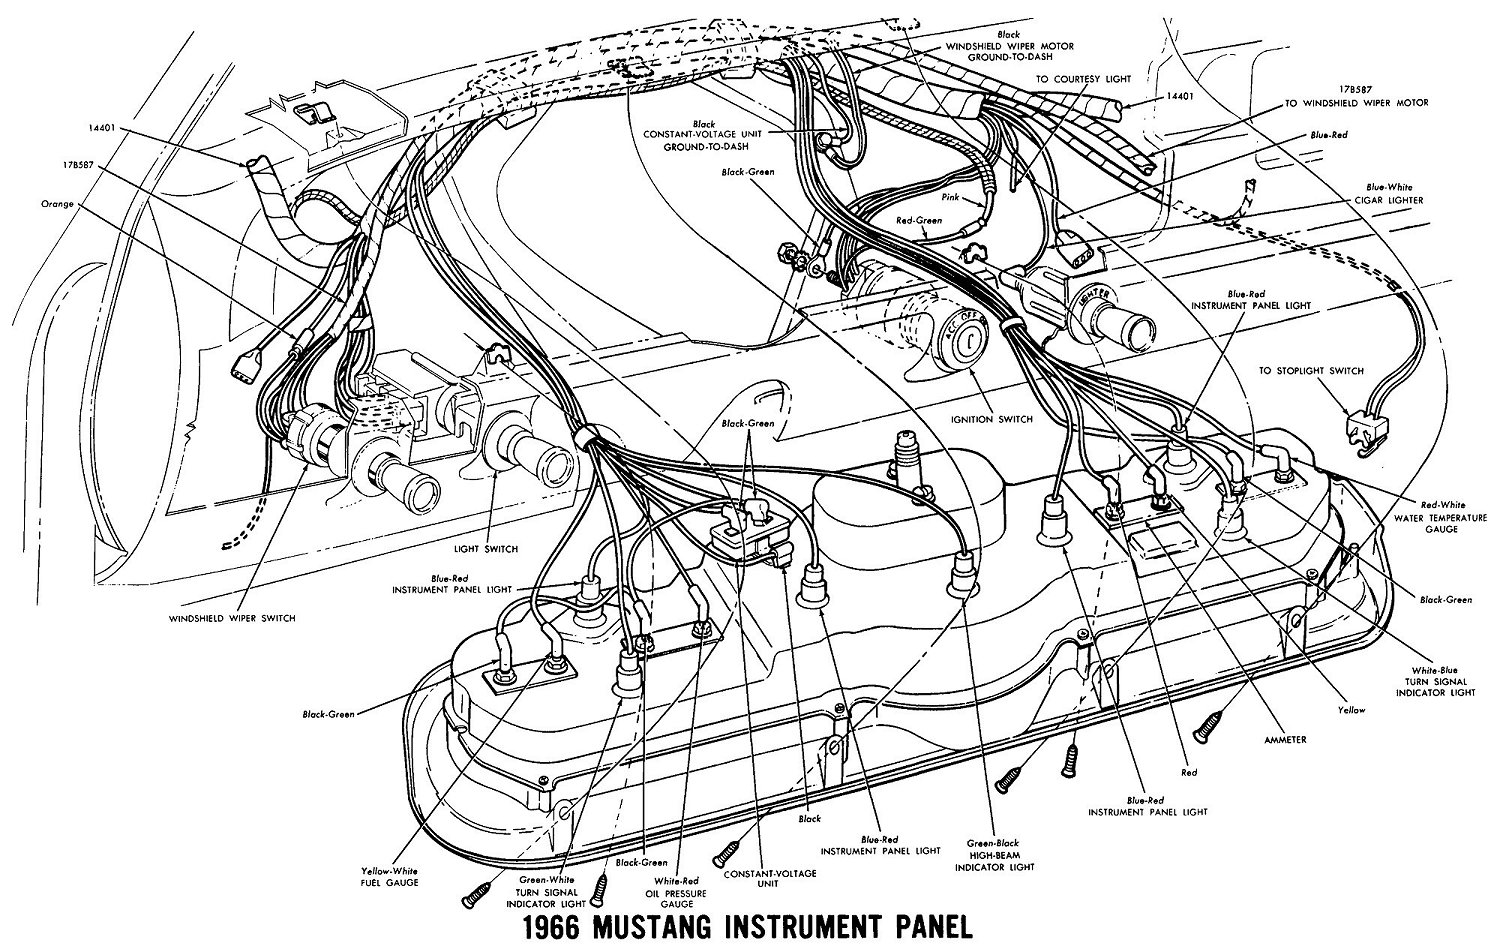 1966 mustang wiring diagrams average joe restoration  66 mustang wiring diagram schematic #3